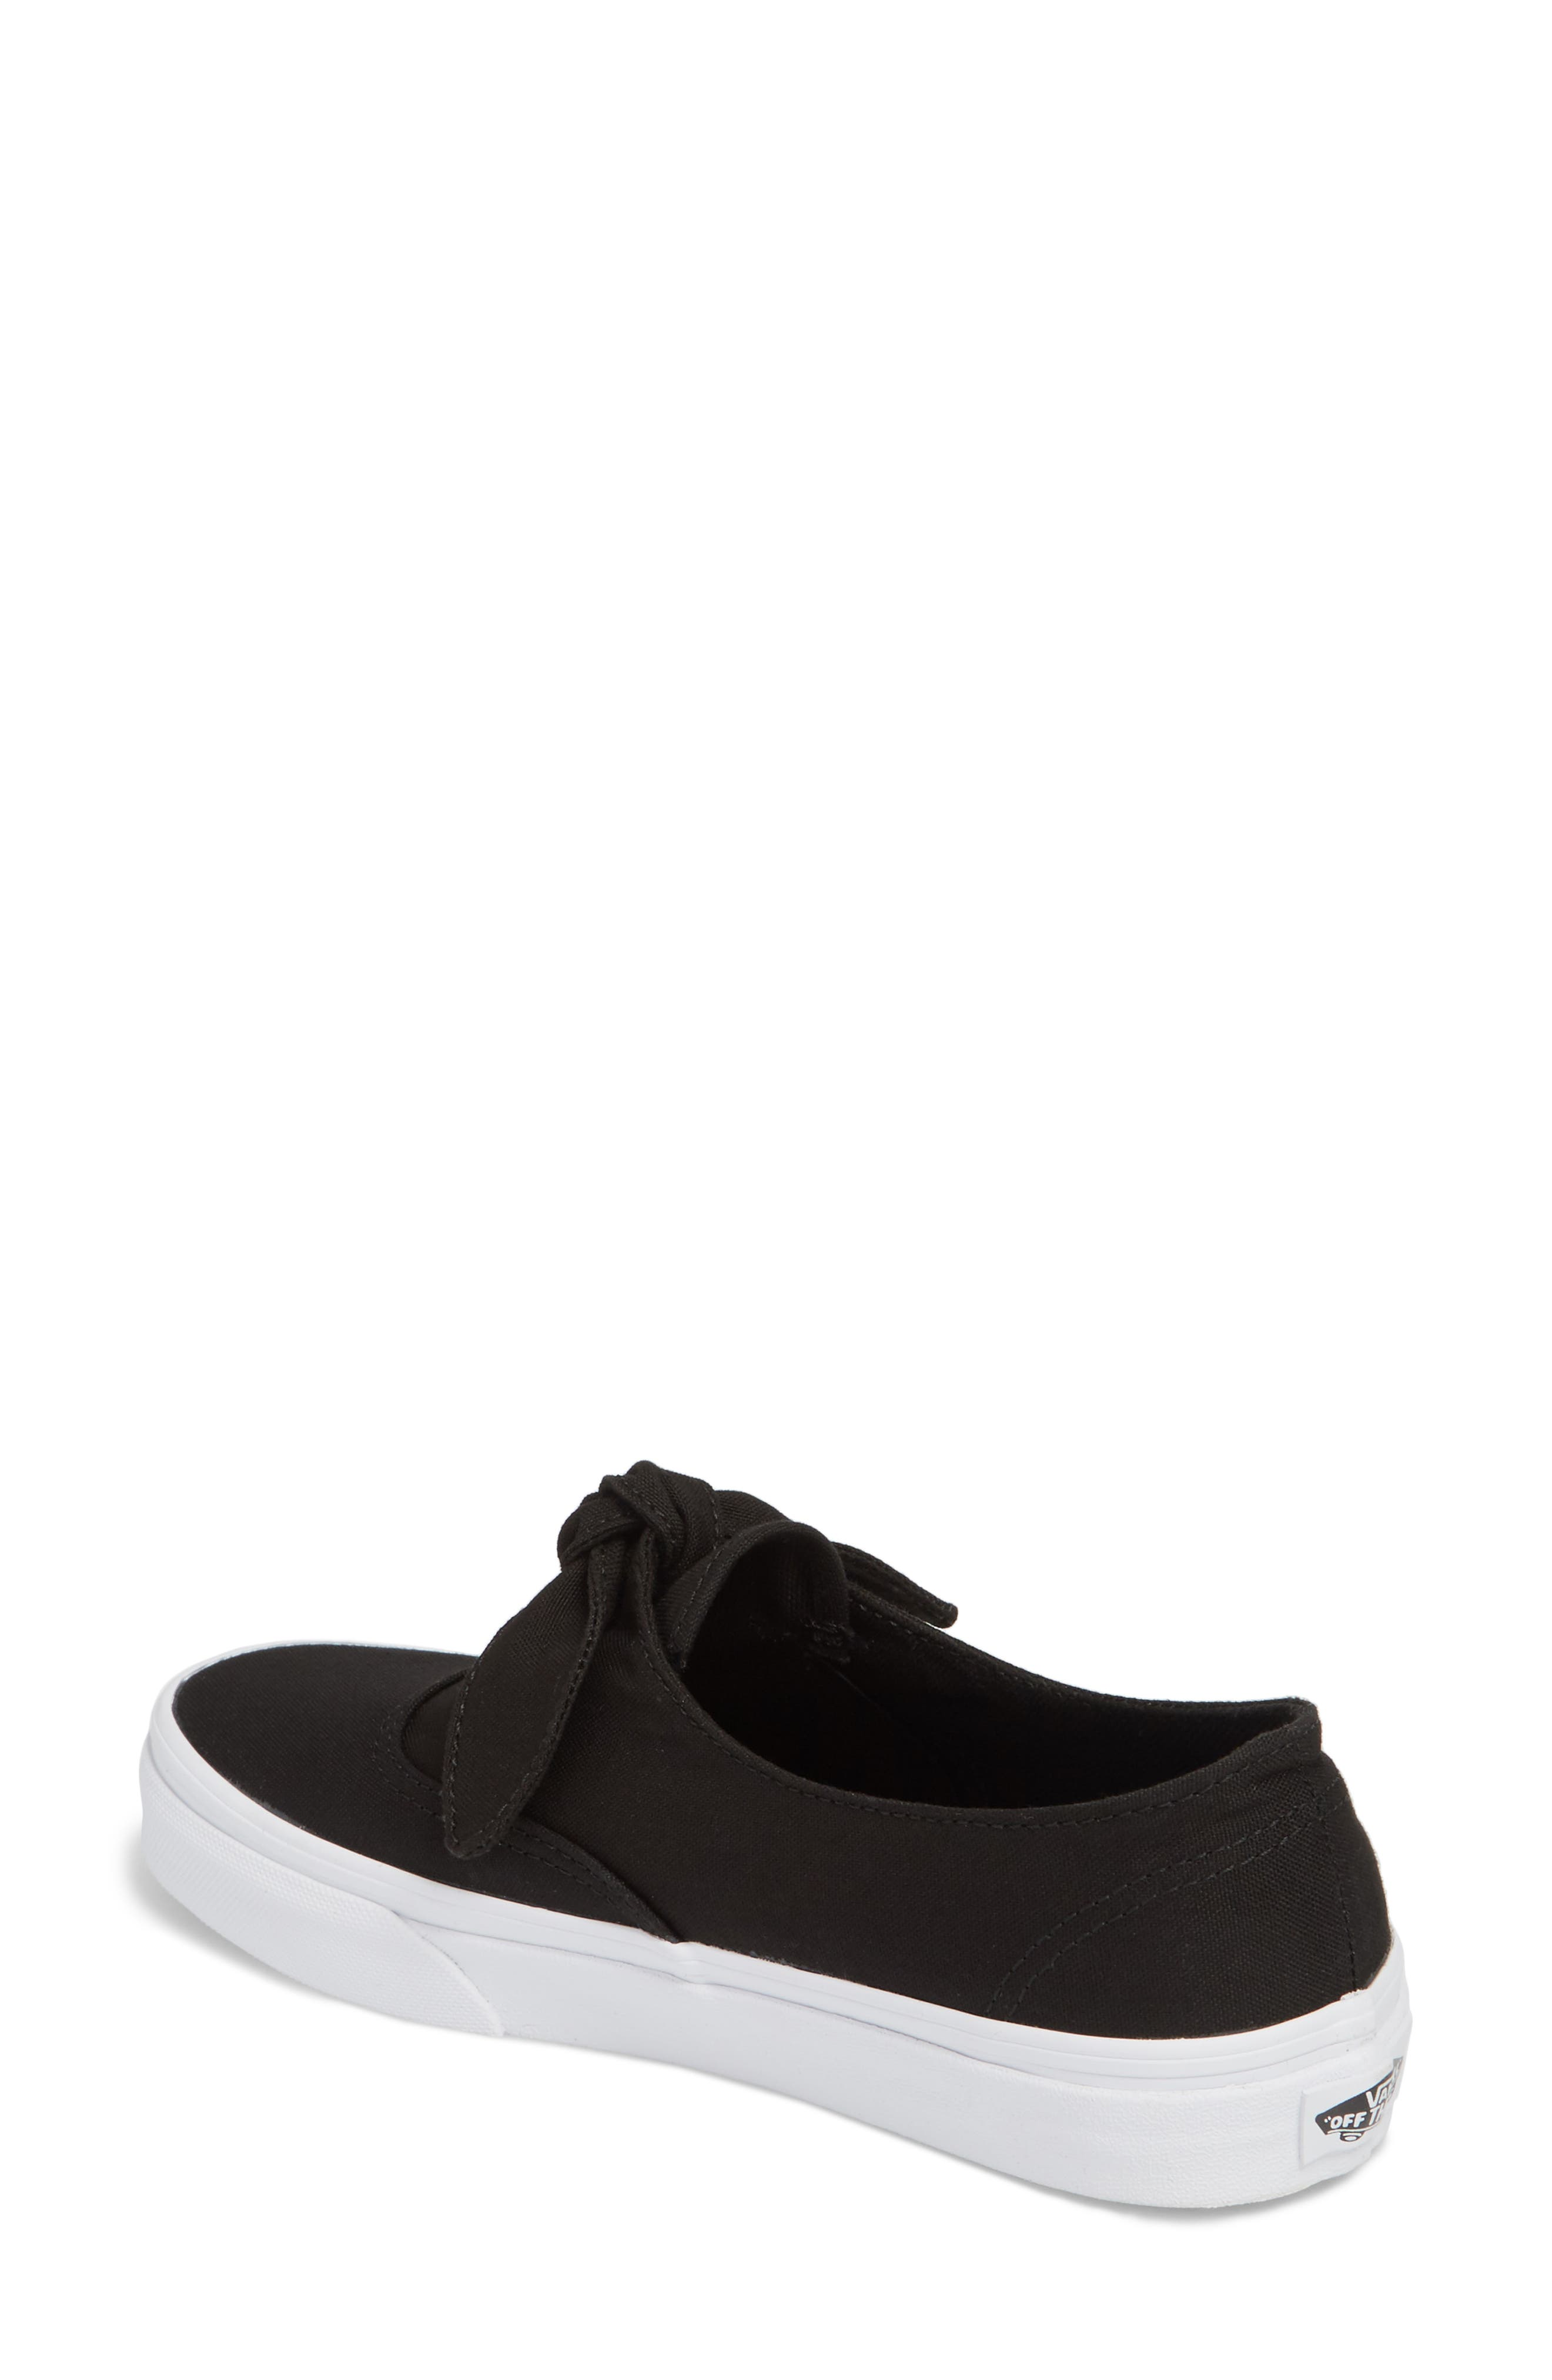 UA Authentic Knotted Slip-On Sneaker,                             Alternate thumbnail 2, color,                             001